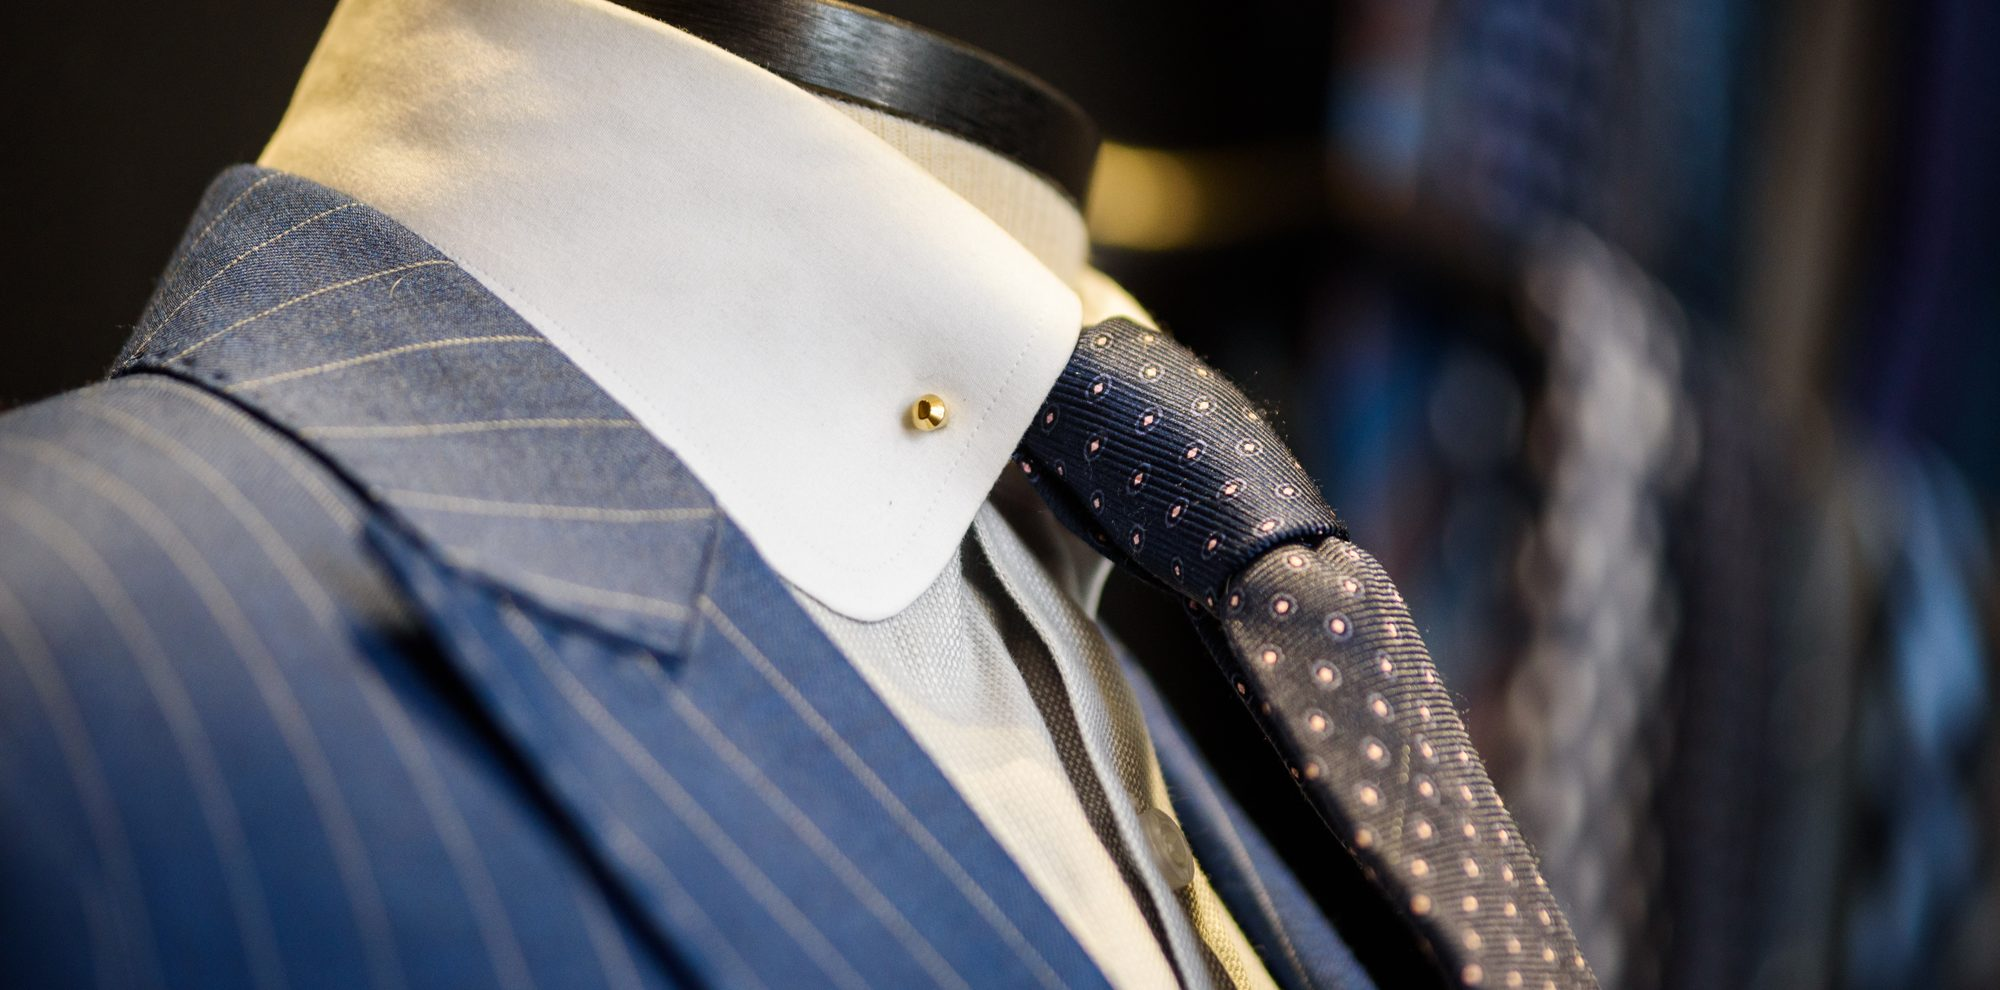 About Bespoke Clothing   Luca Falcone Custom Clothiers   New